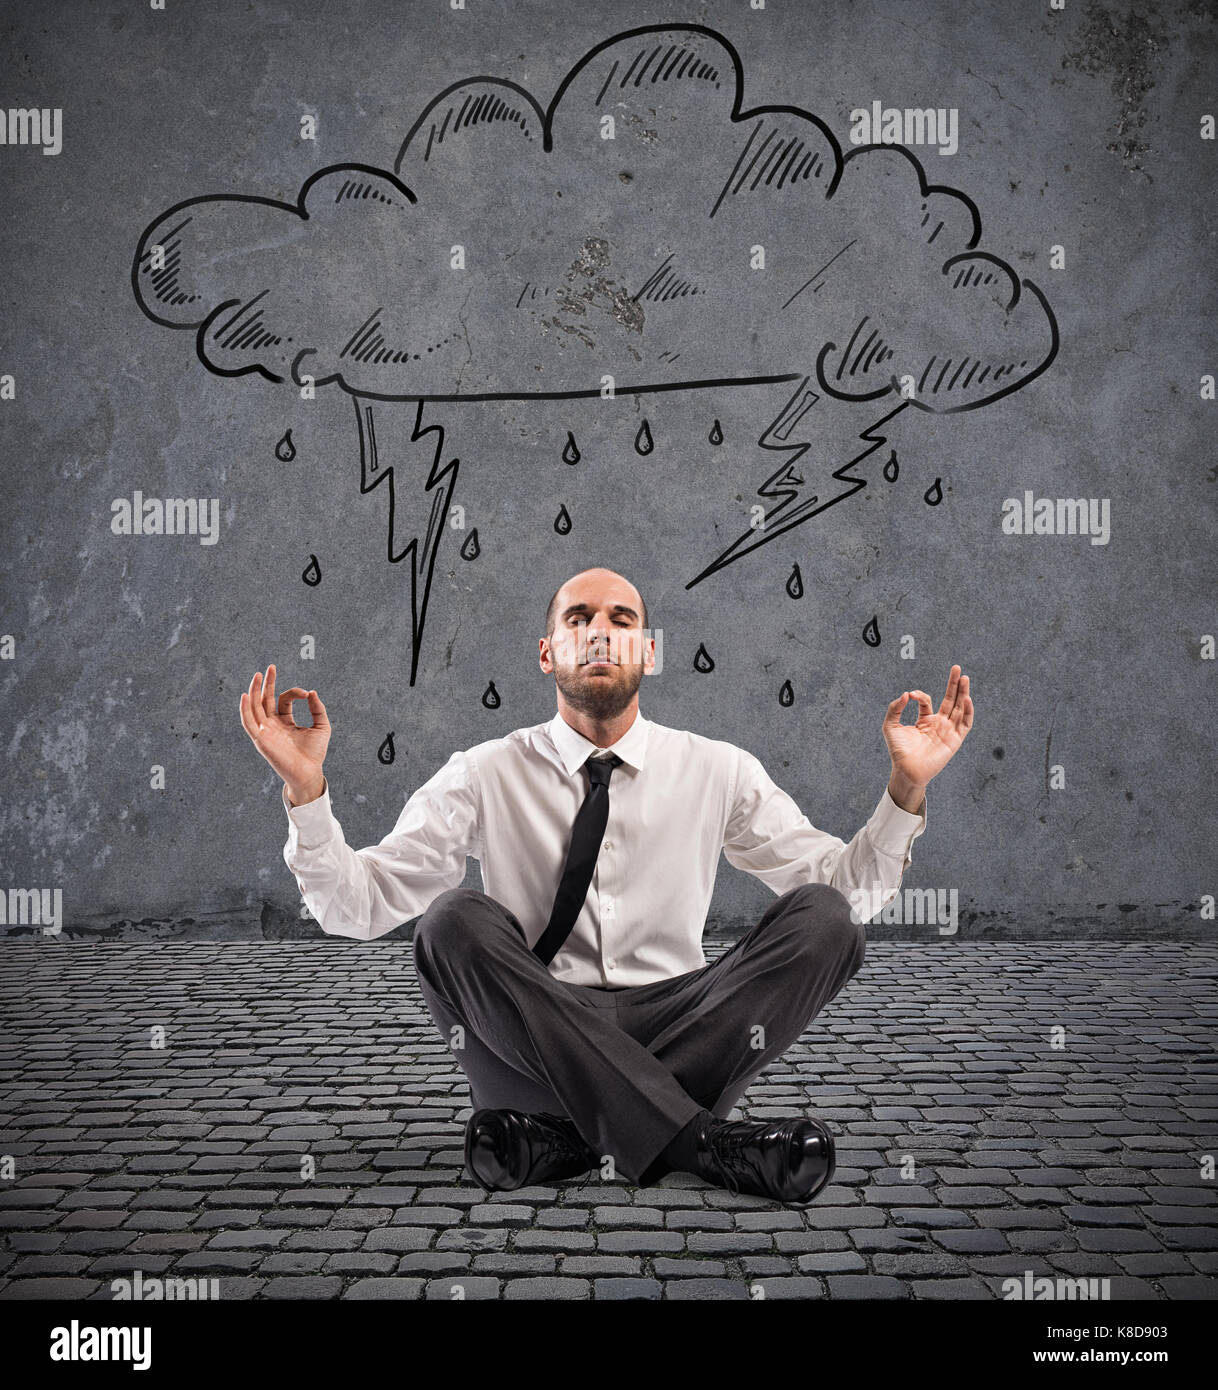 Businessman practice yoga under a rainy cloud - Stock Image